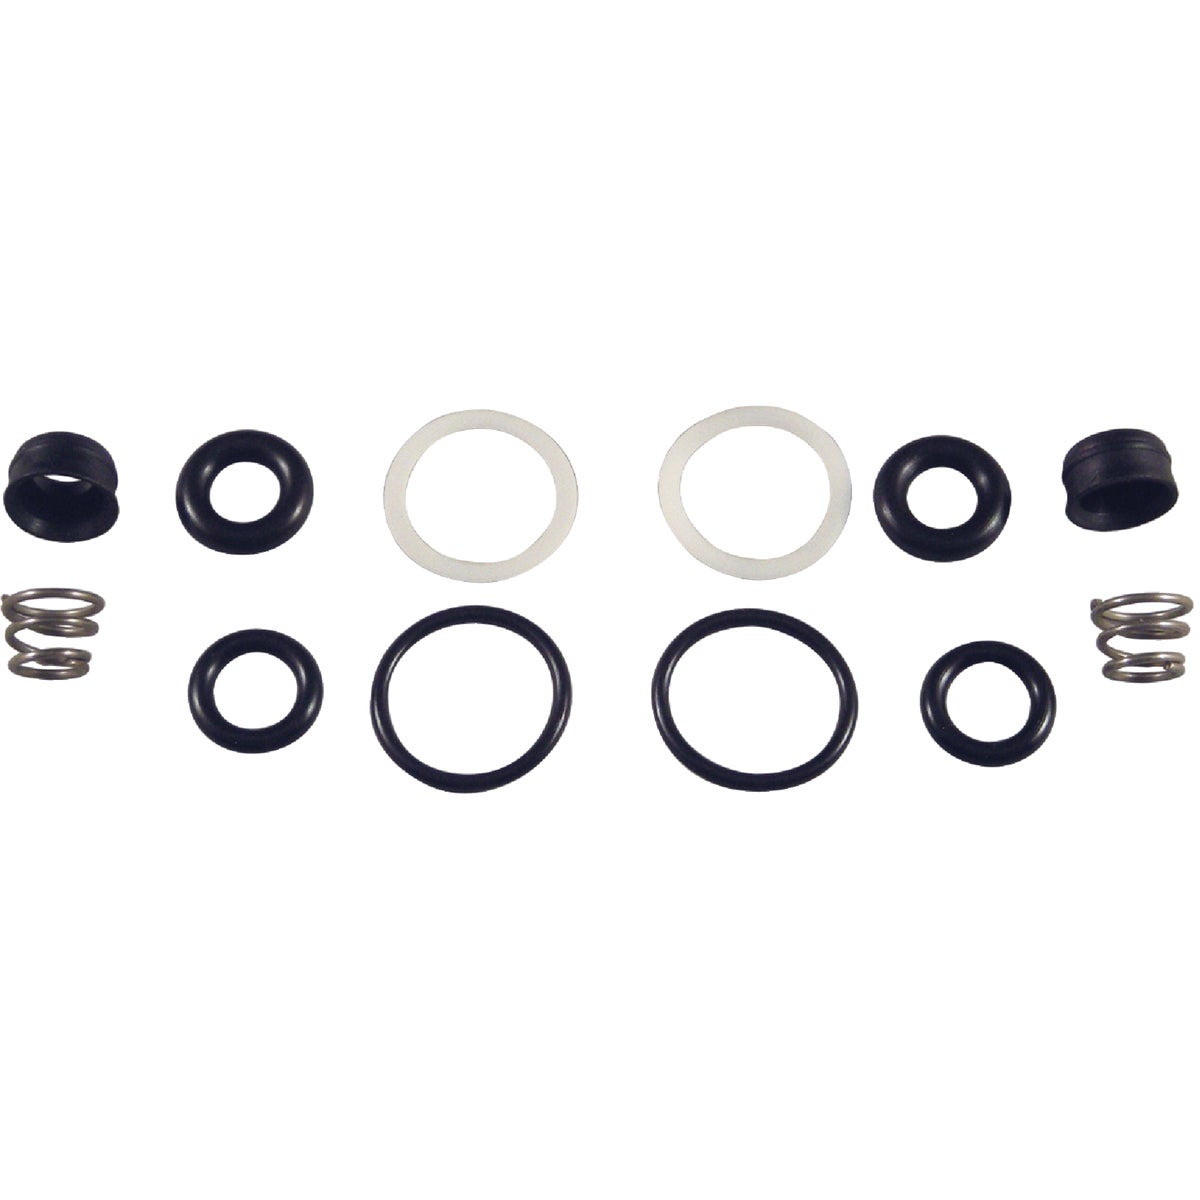 DELTA HANDLE REPAIR KIT - 88101 by Danco Perfect Match